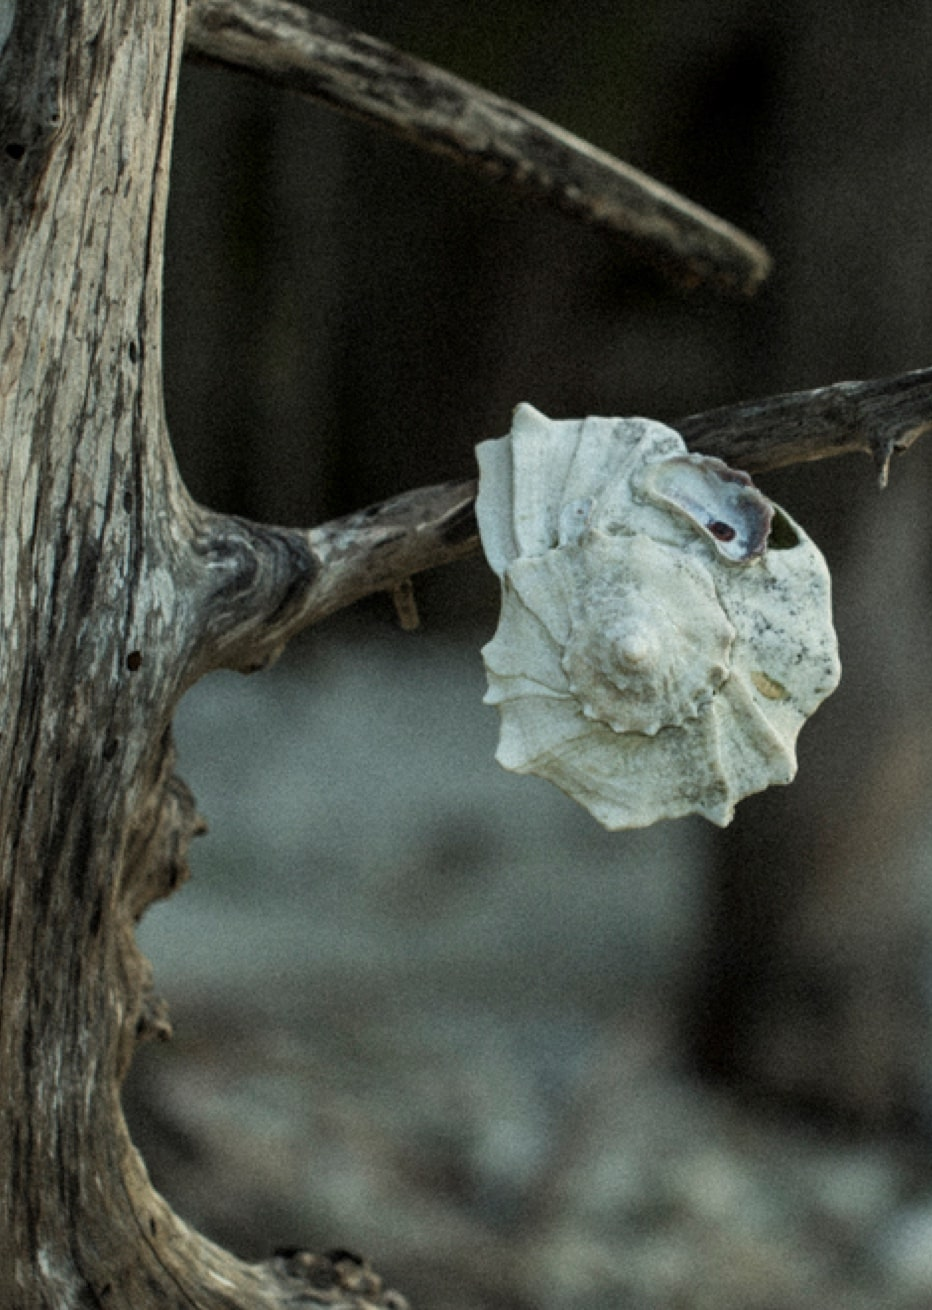 shell on a branch